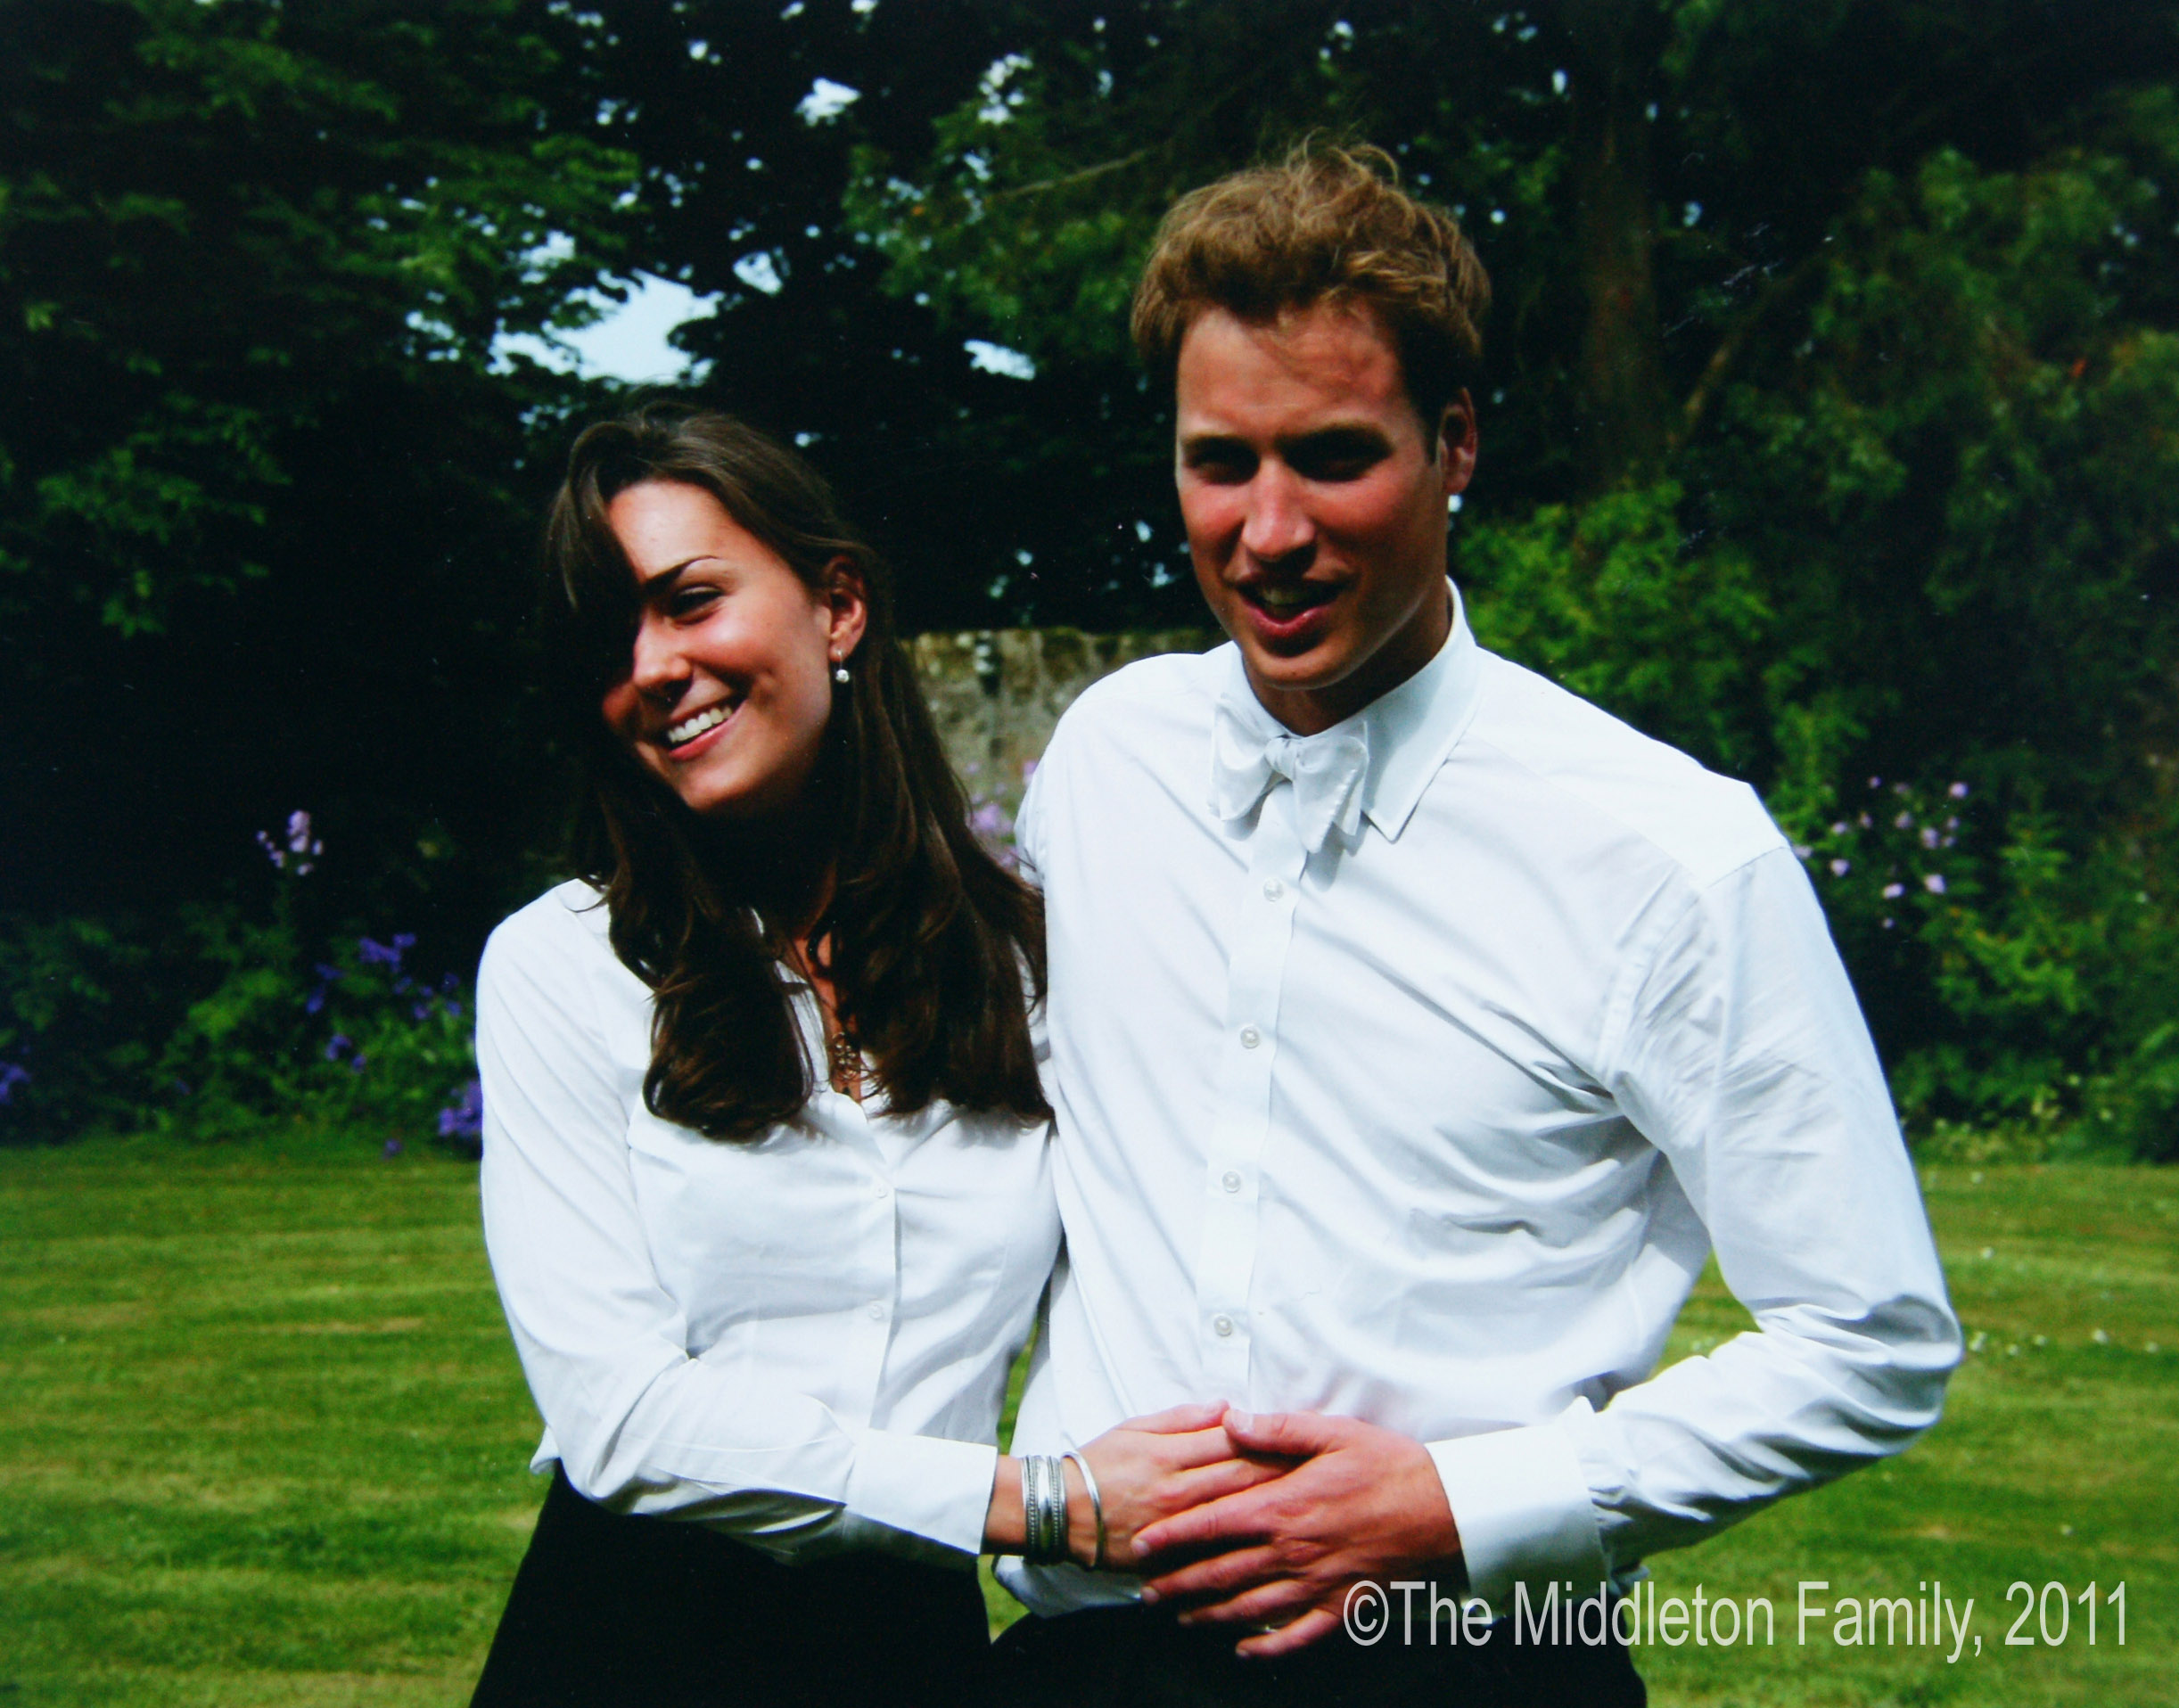 (NO SALES) In this Handout Image provided by Clarence House www.officialroyalwedding2011.org, Kate Middleton and Prince William on the day of their graduation ceremony at St Andrew's University  in St Andrew's on June 23, 2005 in Scotland.